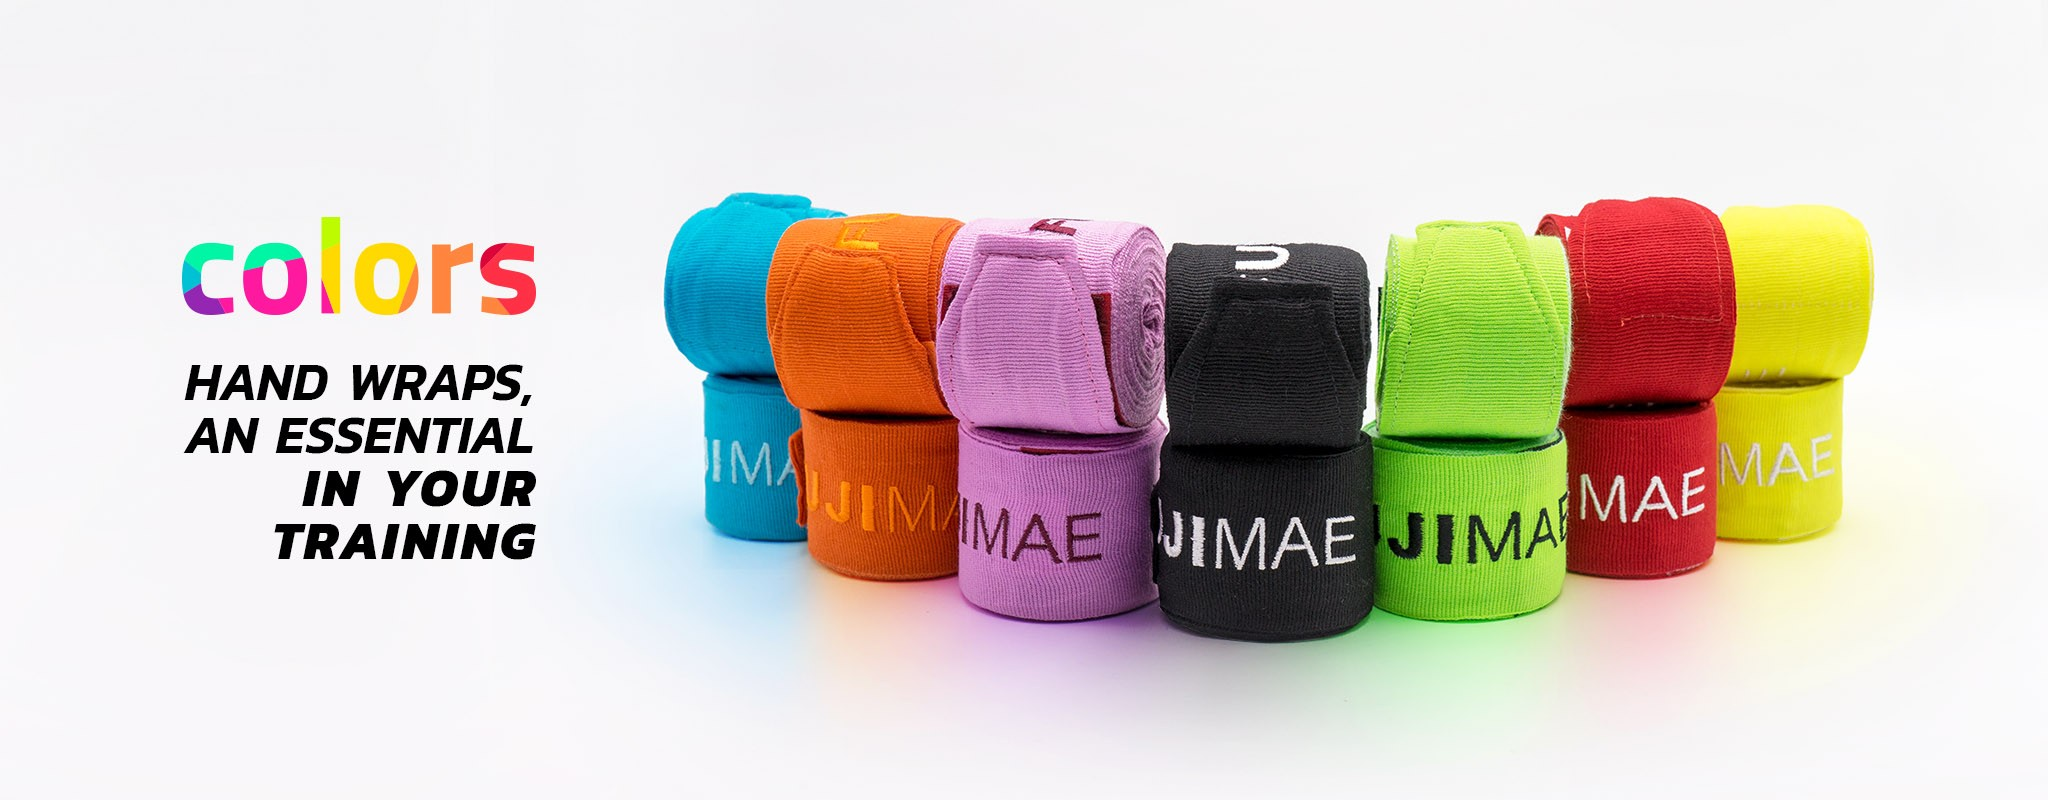 Colors Boxing Hand Wraps